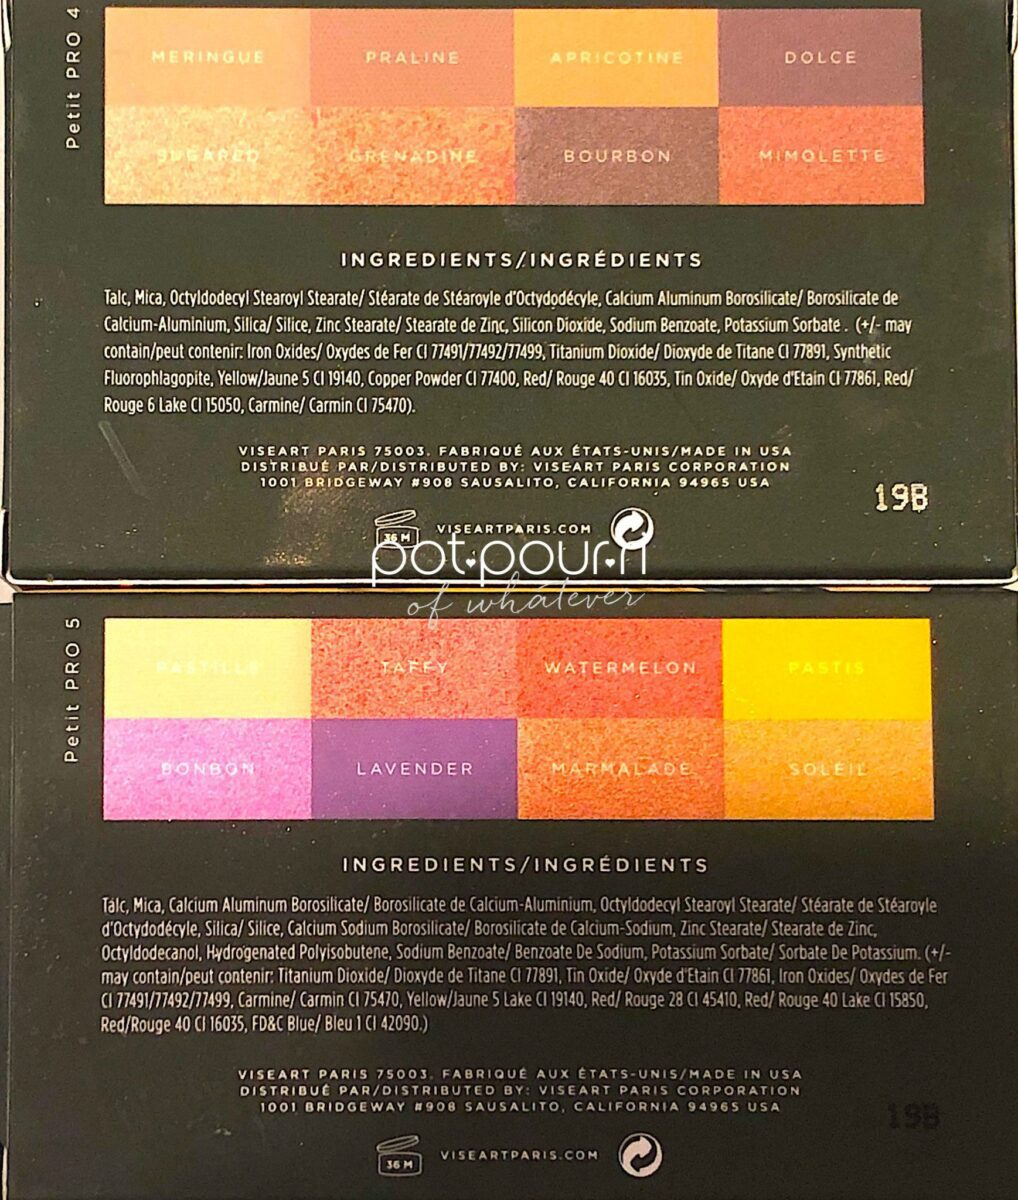 THE INGREDIENTS FOR THE VISEART PETIT PRO PALETTES APRICOTINE AND SOLEIL